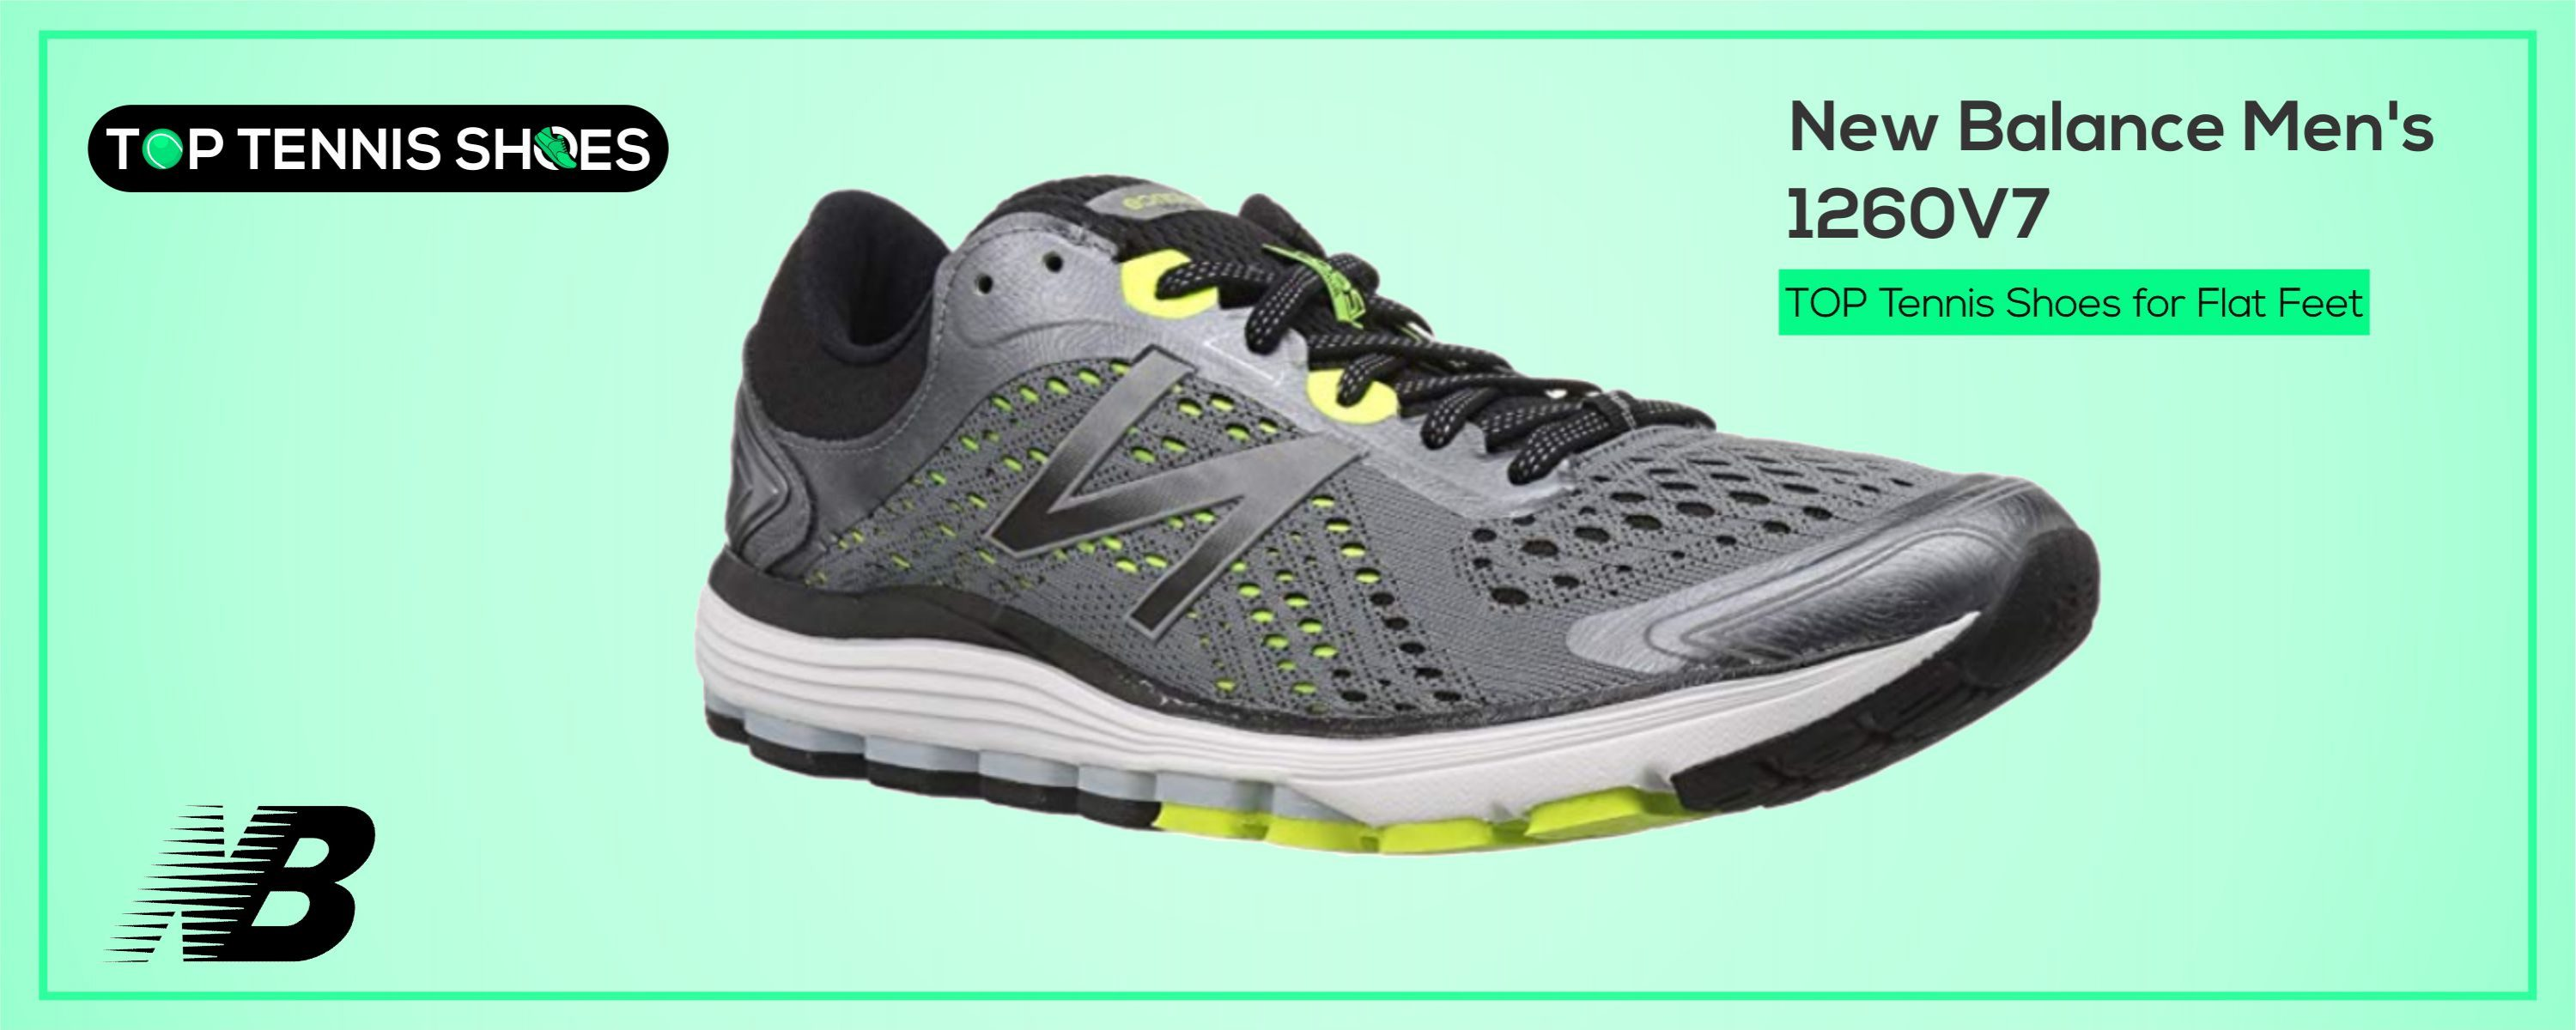 30+ Best Cheap Running Shoes (Buyer's Guide) | RunRepeat